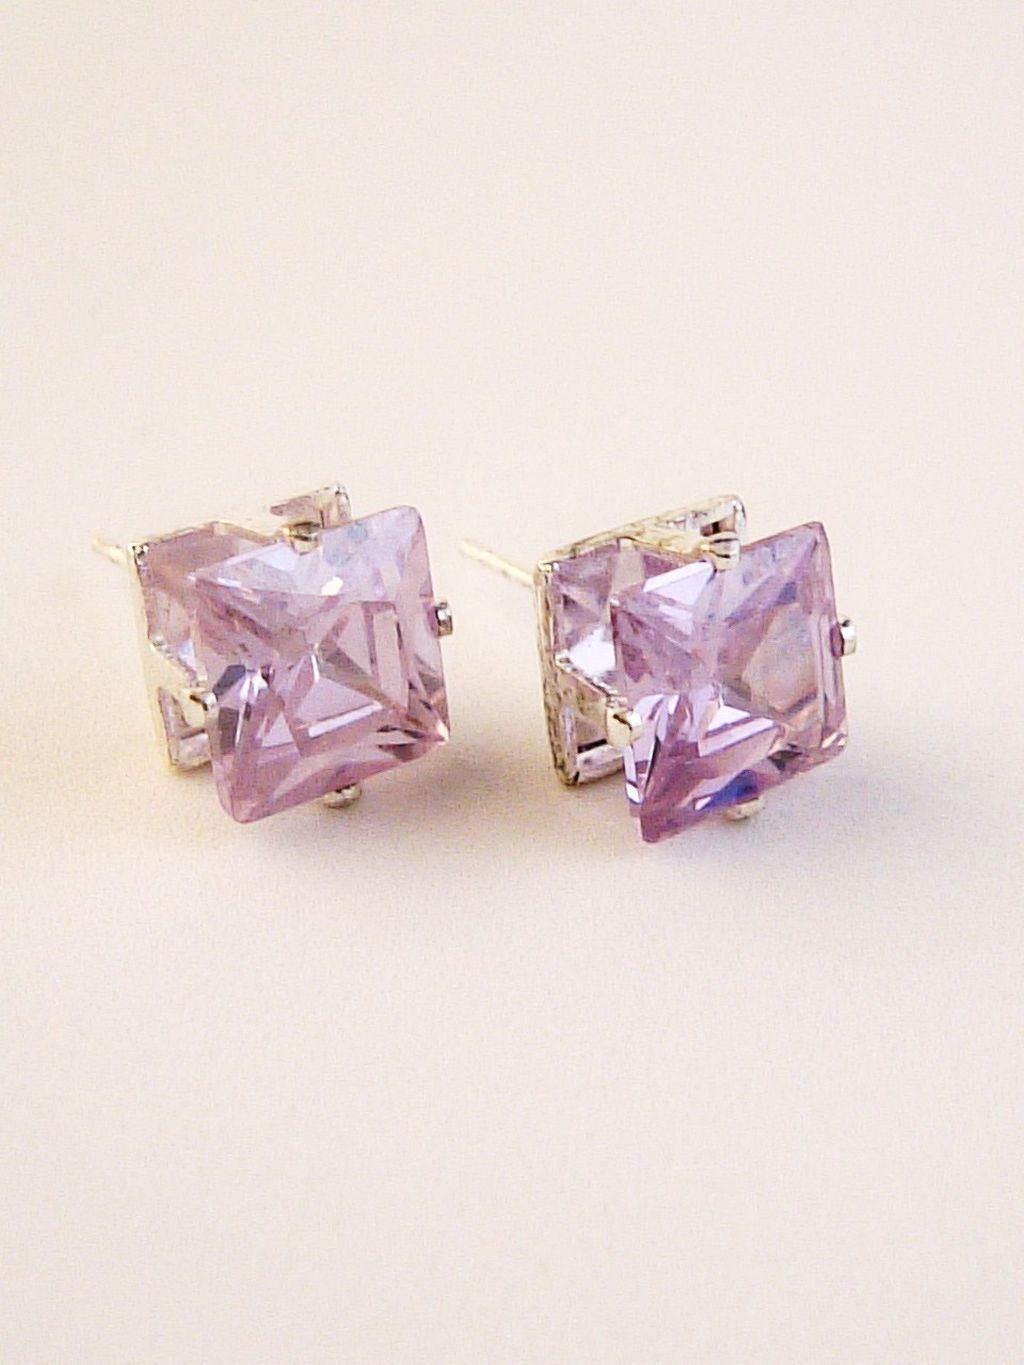 Alexandrite Princess Cut Silver Stud Earrings Genuine CZ Cubic Zirconia